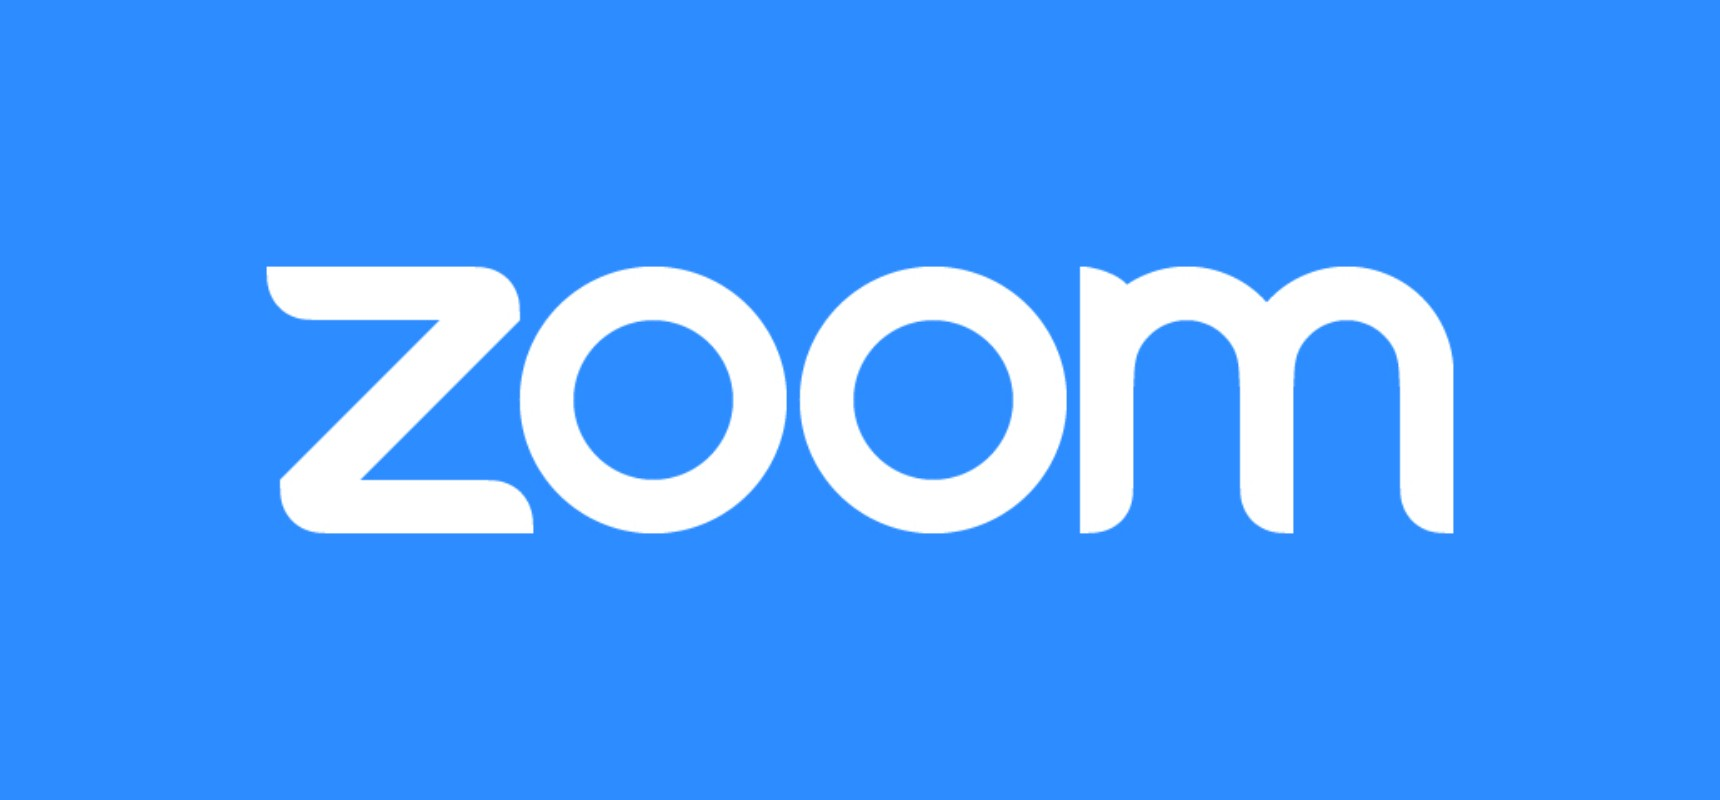 now we have zoom integration